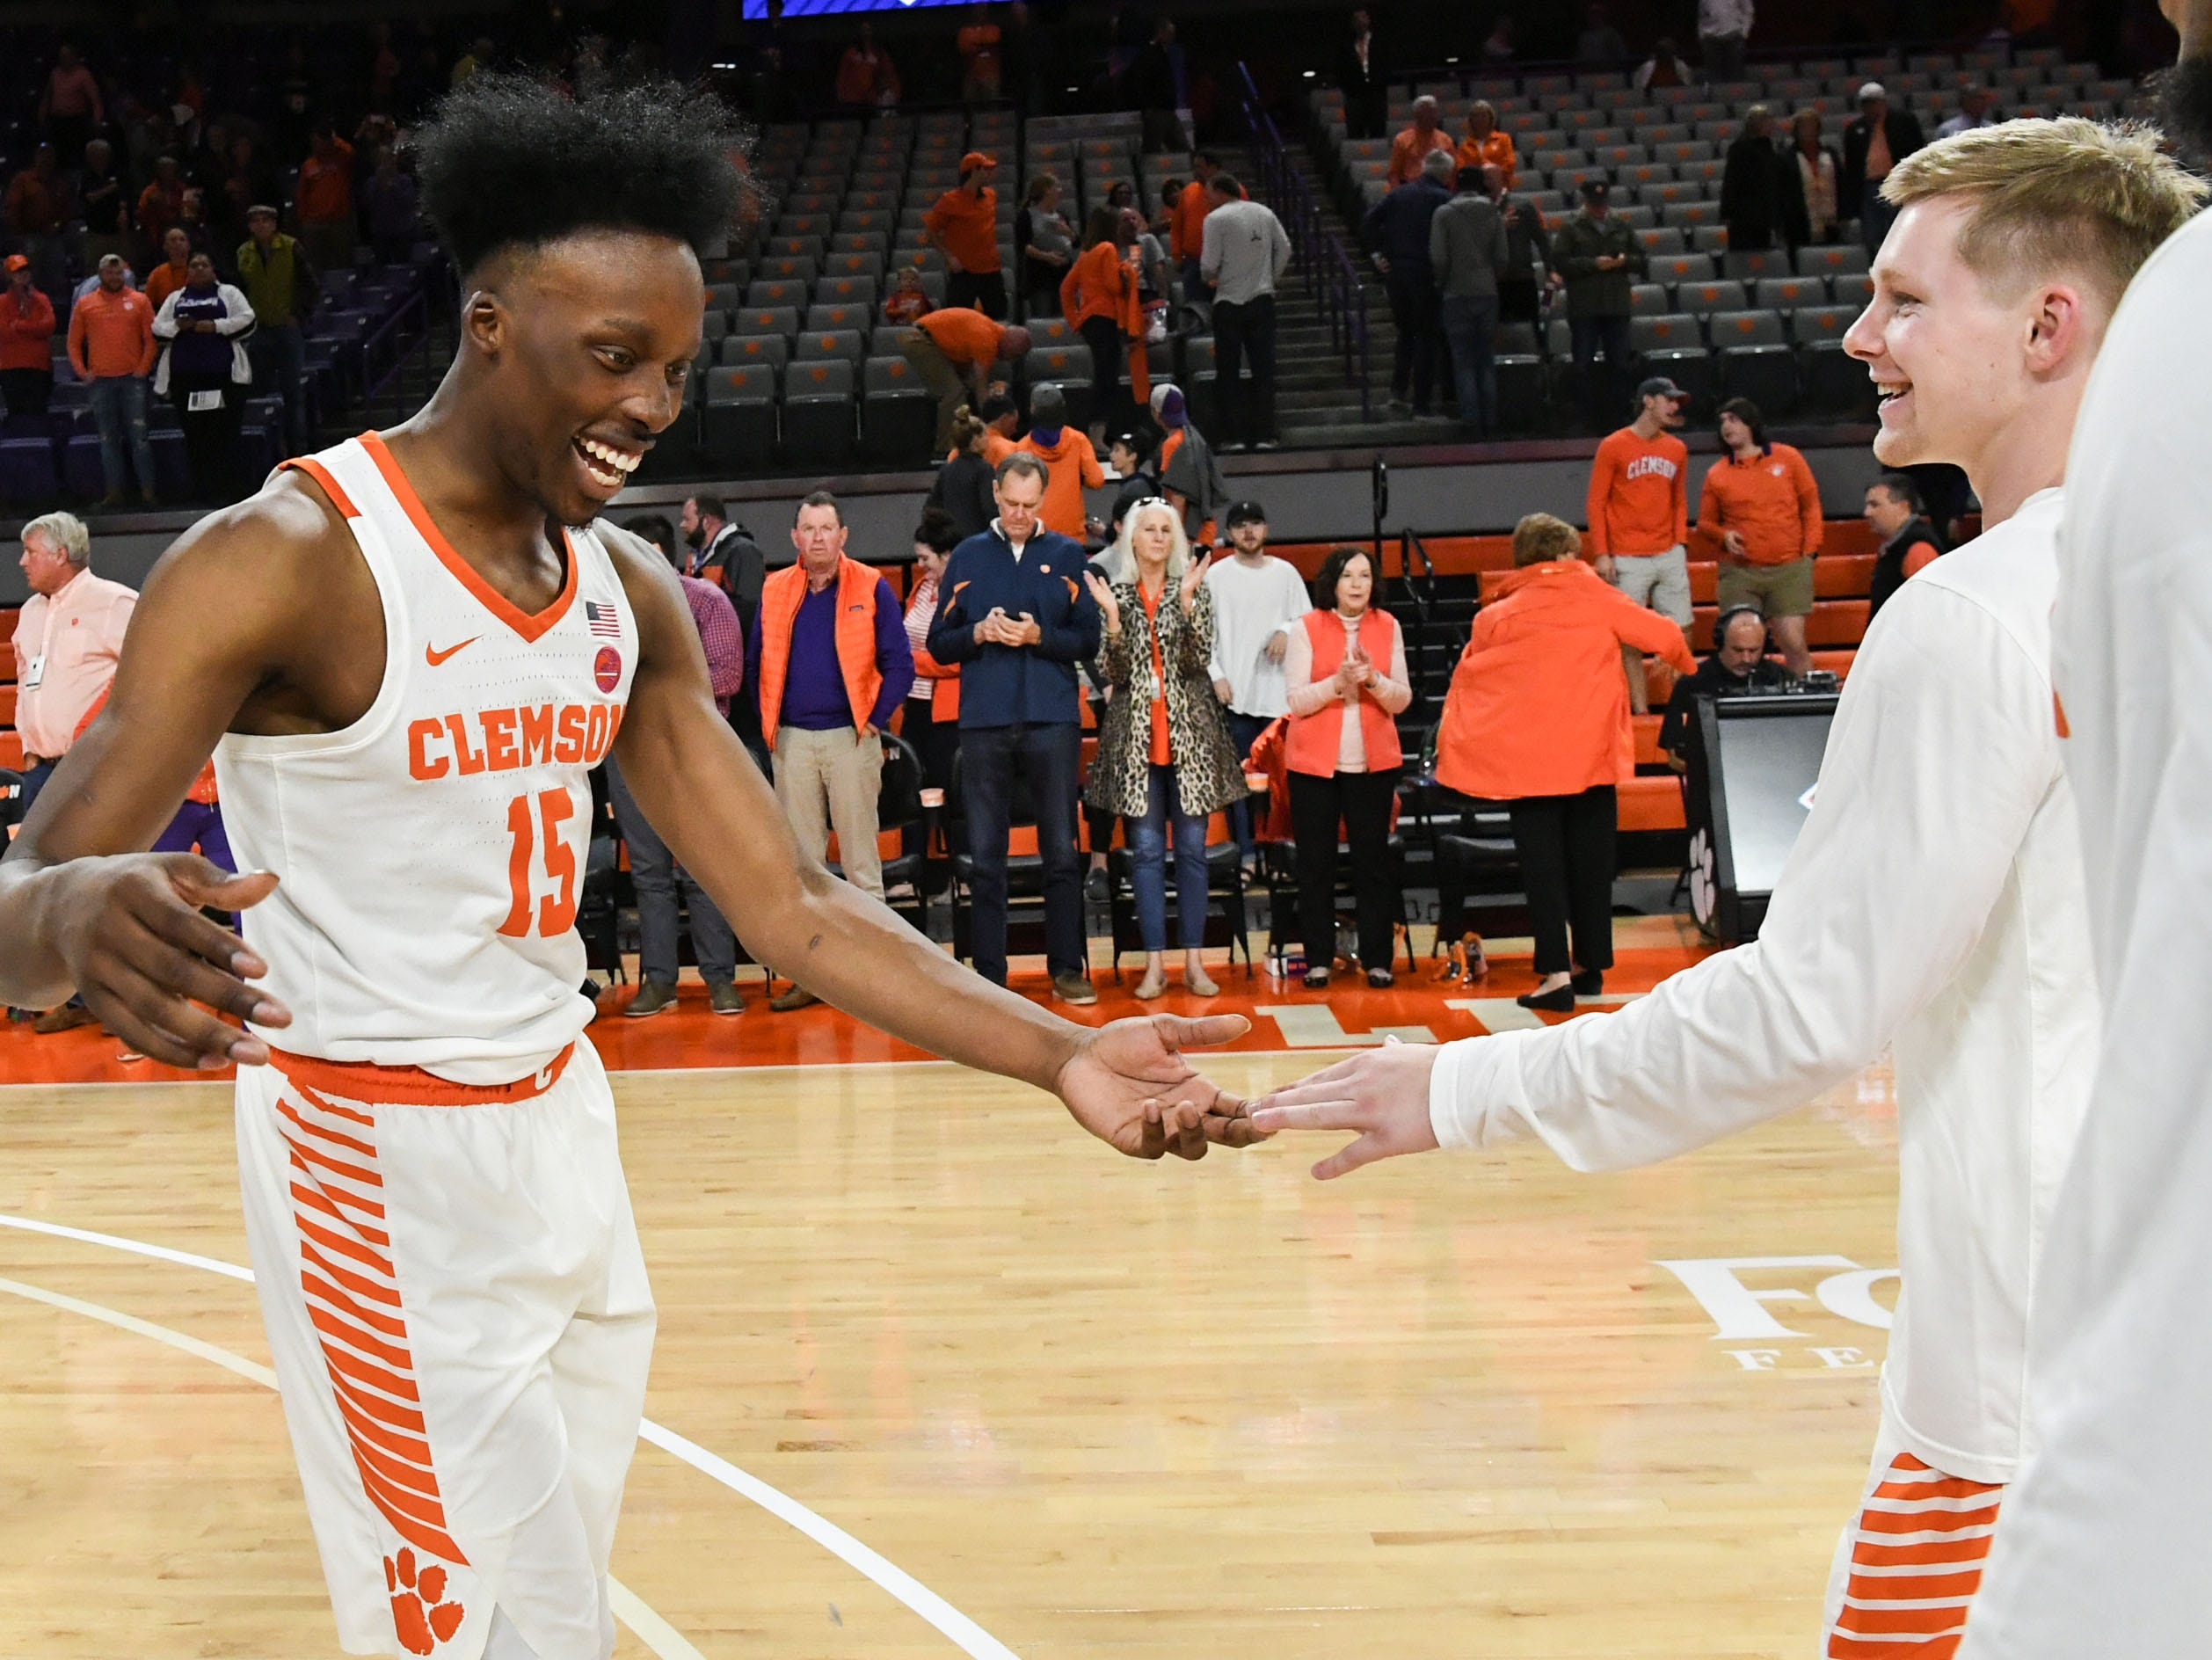 Clemson forward John Newman (15) and Clemson guard Lyles Davis (3) celebrate after the Tigers beat Wright State 75-69 in the first round of the NIT at Littlejohn Coliseum in Clemson Tuesday, March 19, 2019.